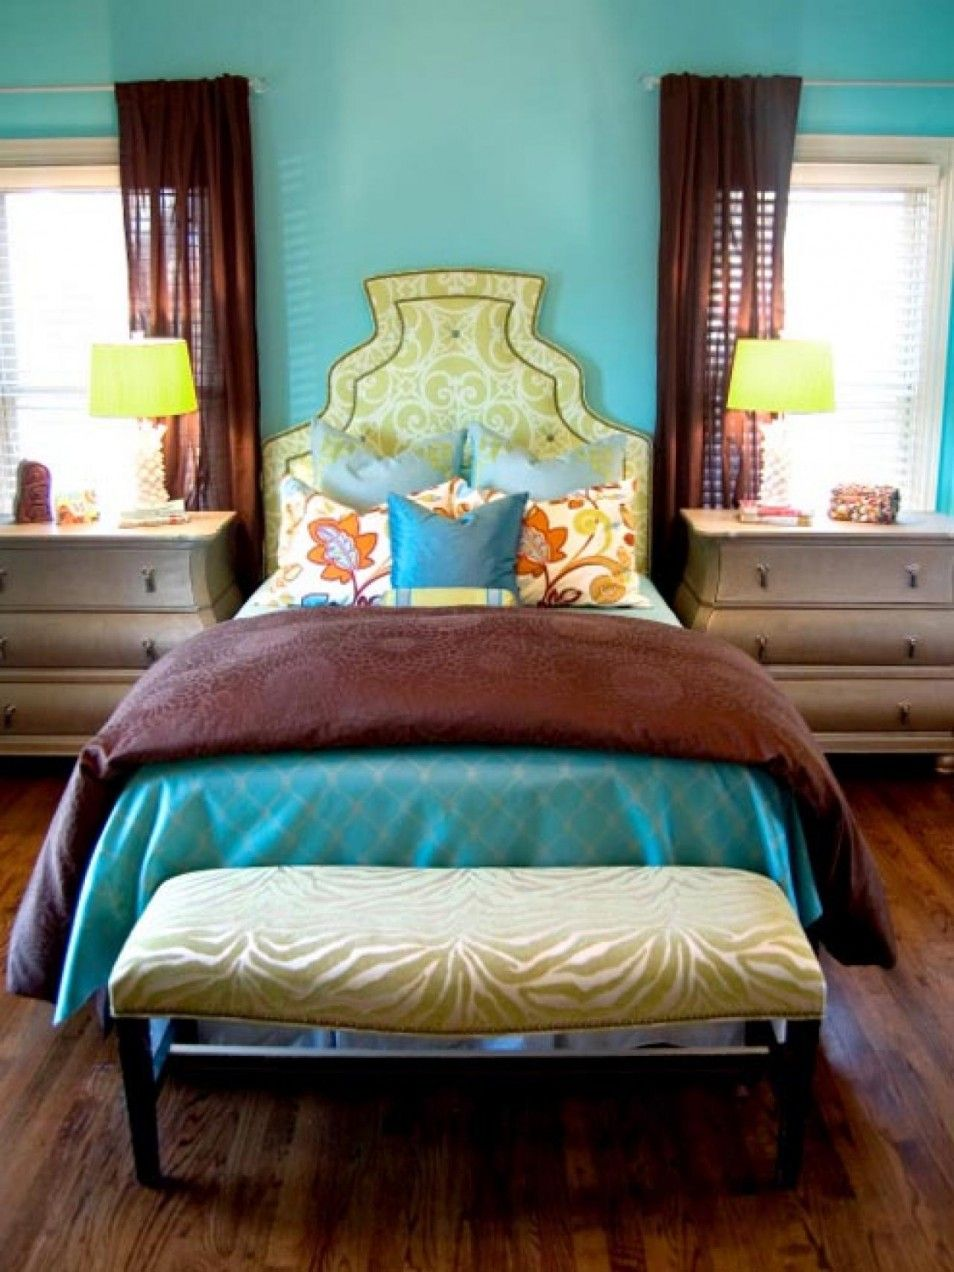 Blue and green bedrooms for girls - The Amazing Blue And Green Bedrooms Design At Apartment Colorful Bedrooms Bedrooms Amp Bedroom Decorating Ideas